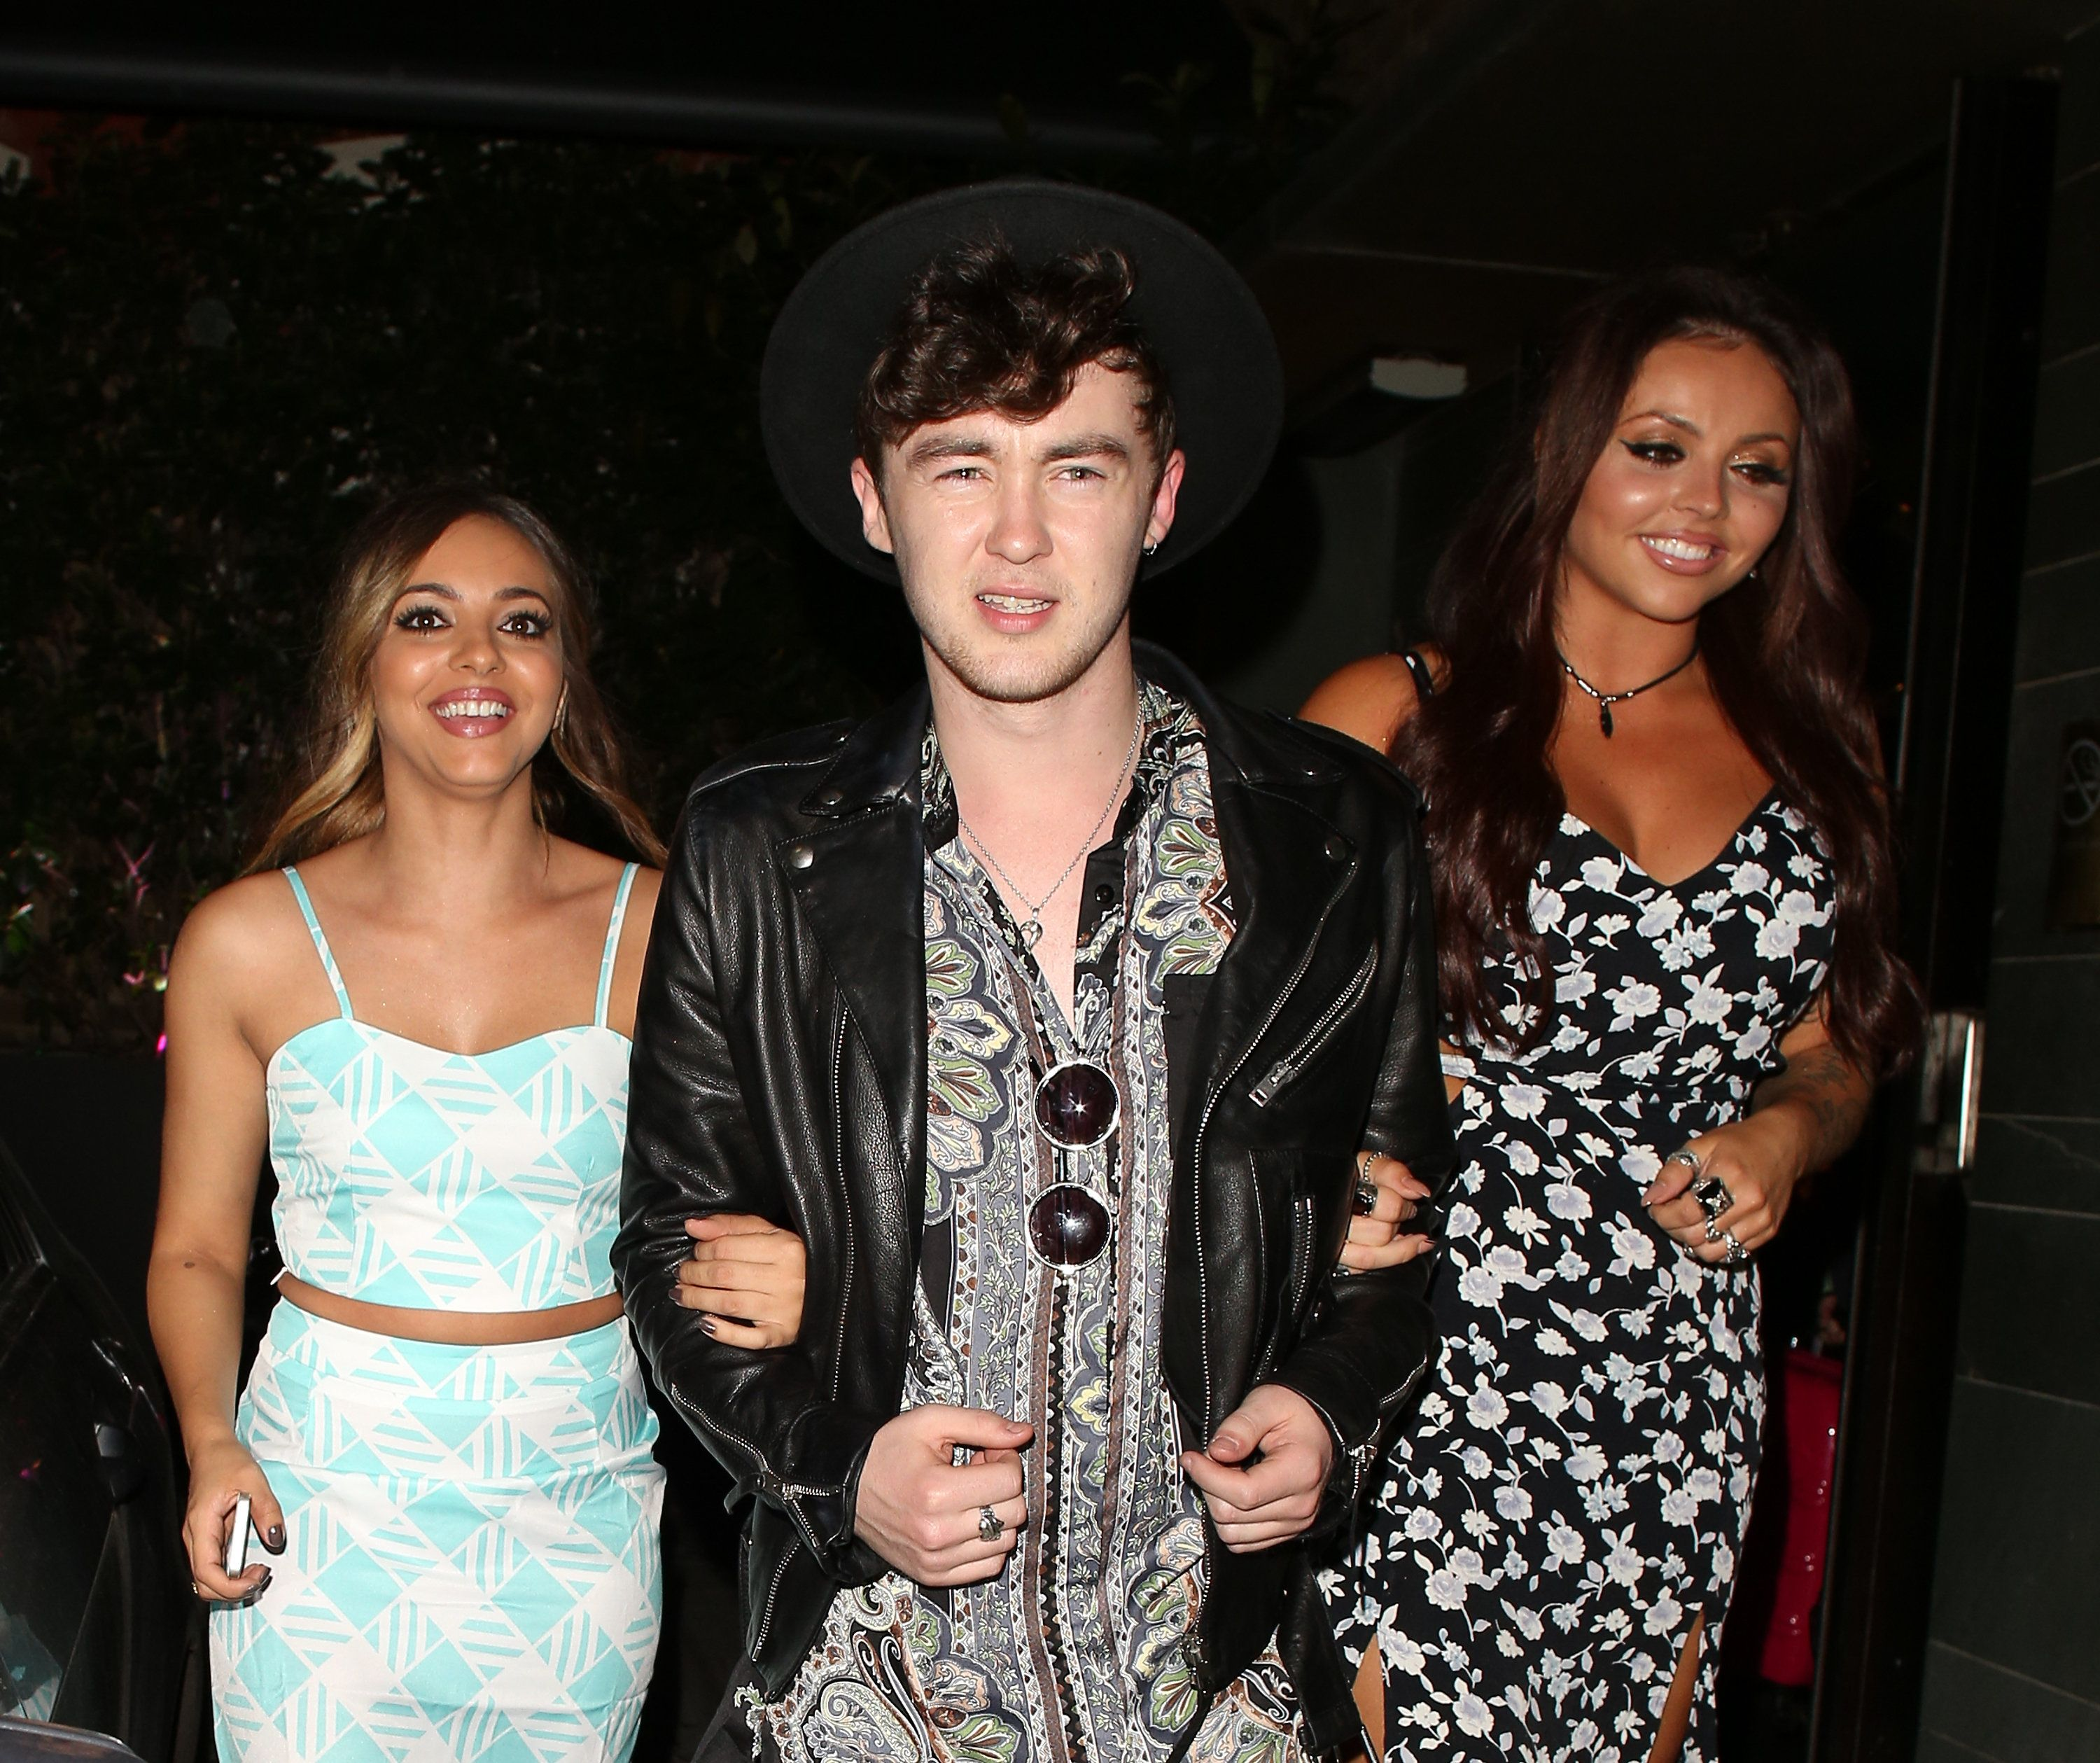 Speculation Jake Roche And Jesy Nelson Have Split Just Gathered Serious